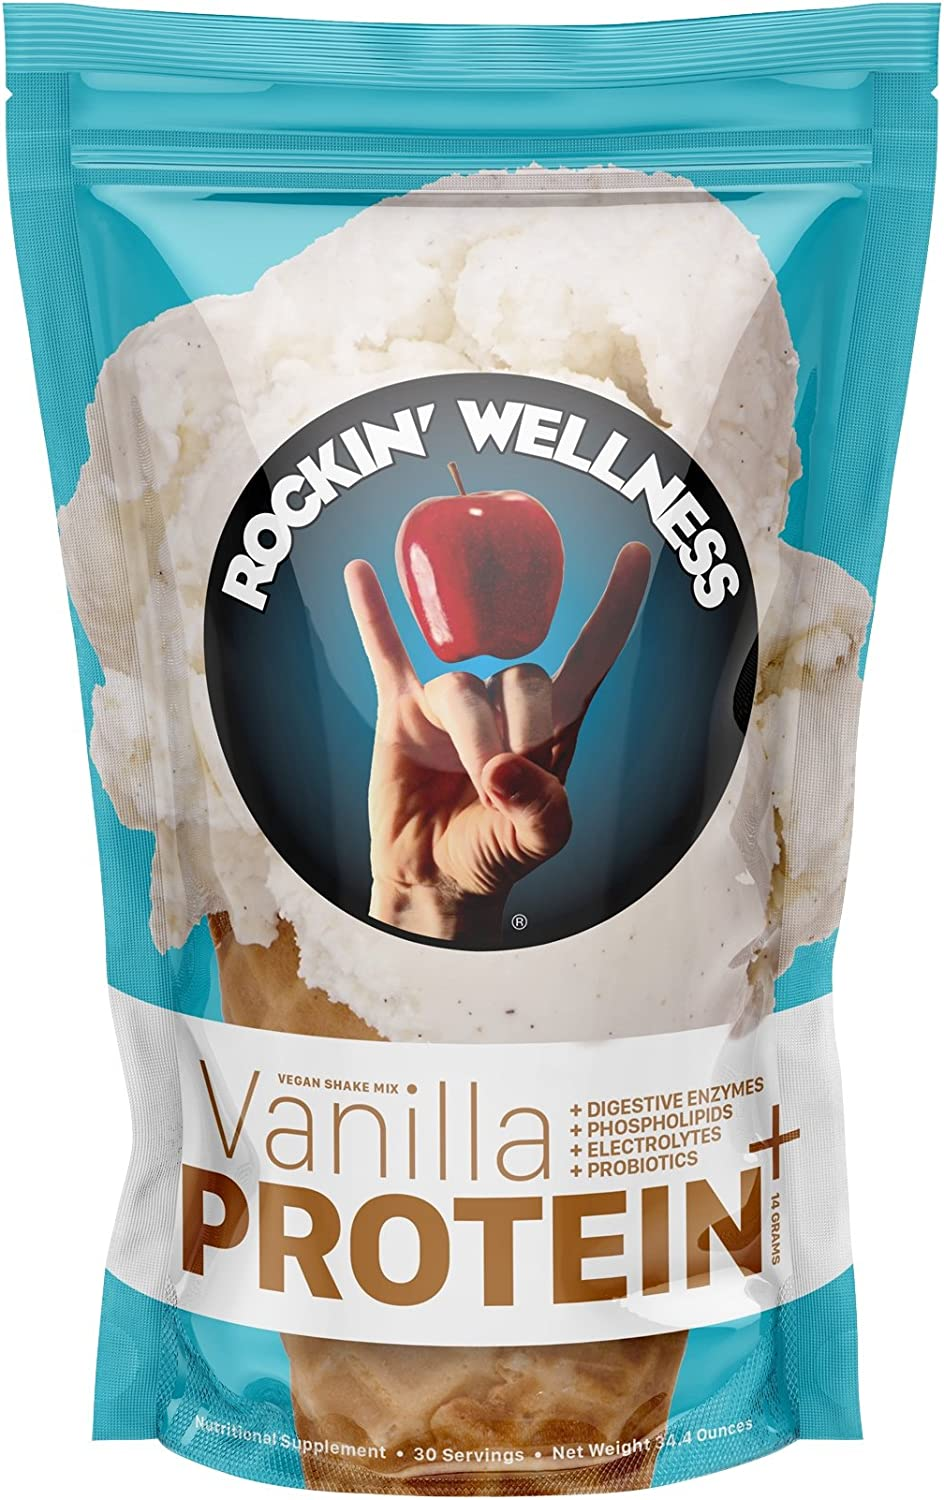 Rockin Wellness – Protein Superfood Vegan, Organic, Non-GMO, All Natural Total Body Nutrition, Gluten-Free, Dairy-Free, 21 Servings